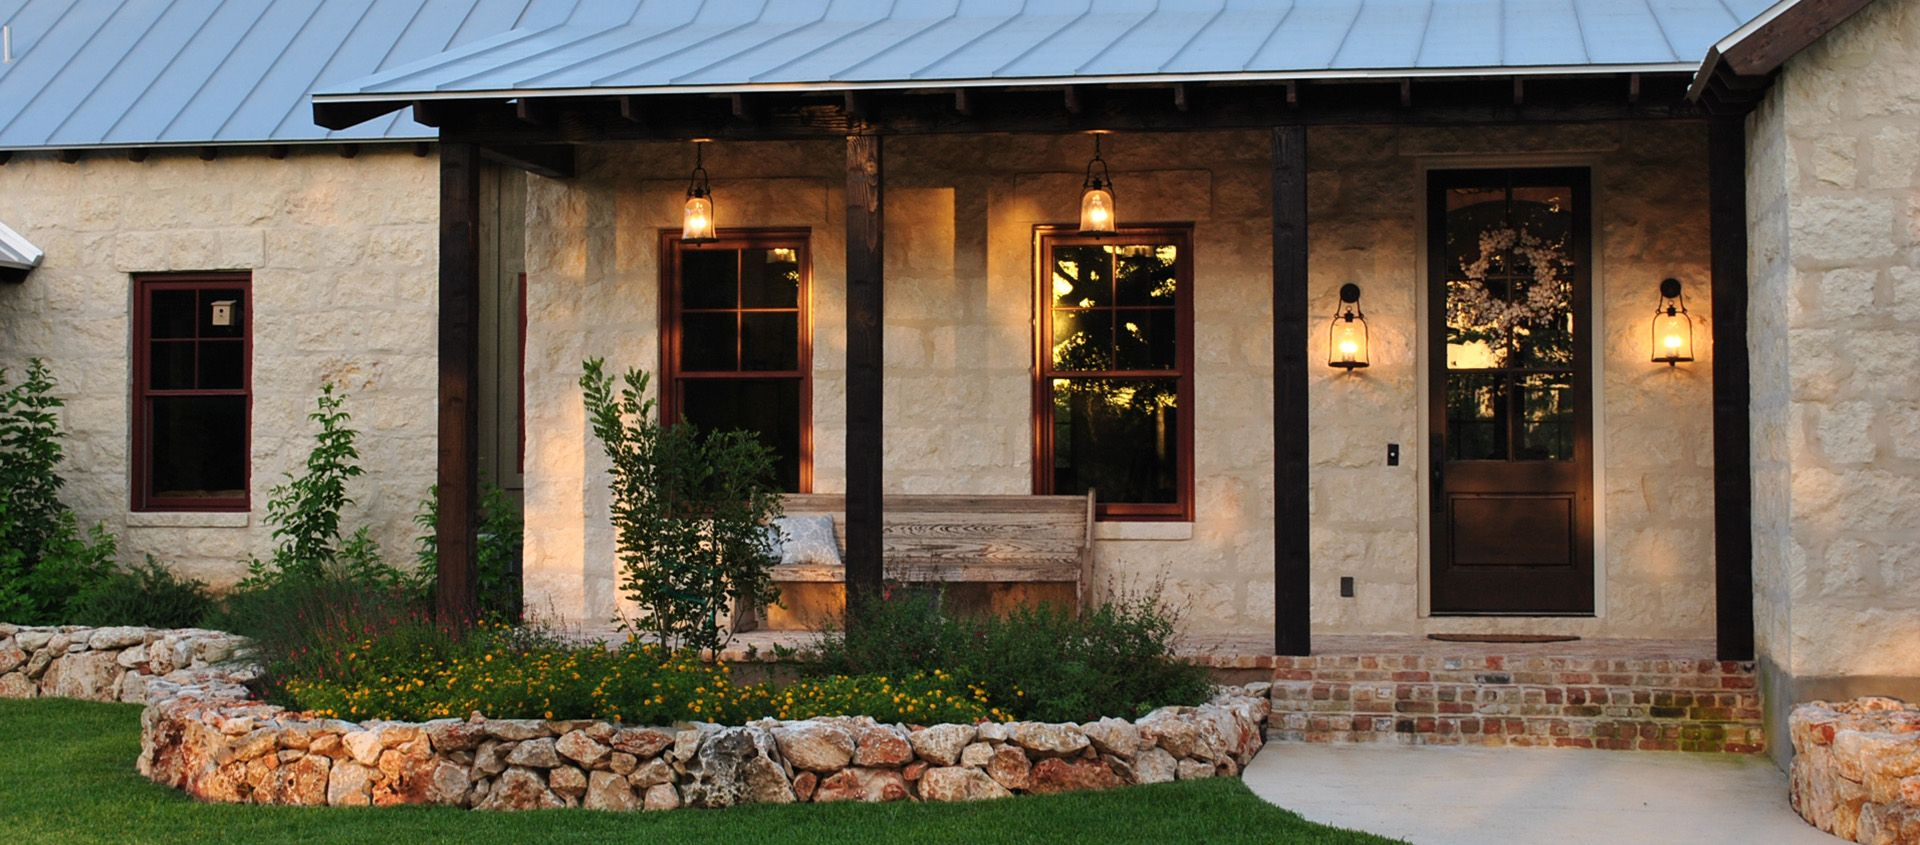 Ranch Home Comal County Custom Home Designers Residential Architects Dibelloarchitects Com In 2020 Ranch House Residential Architect Hill Country Homes